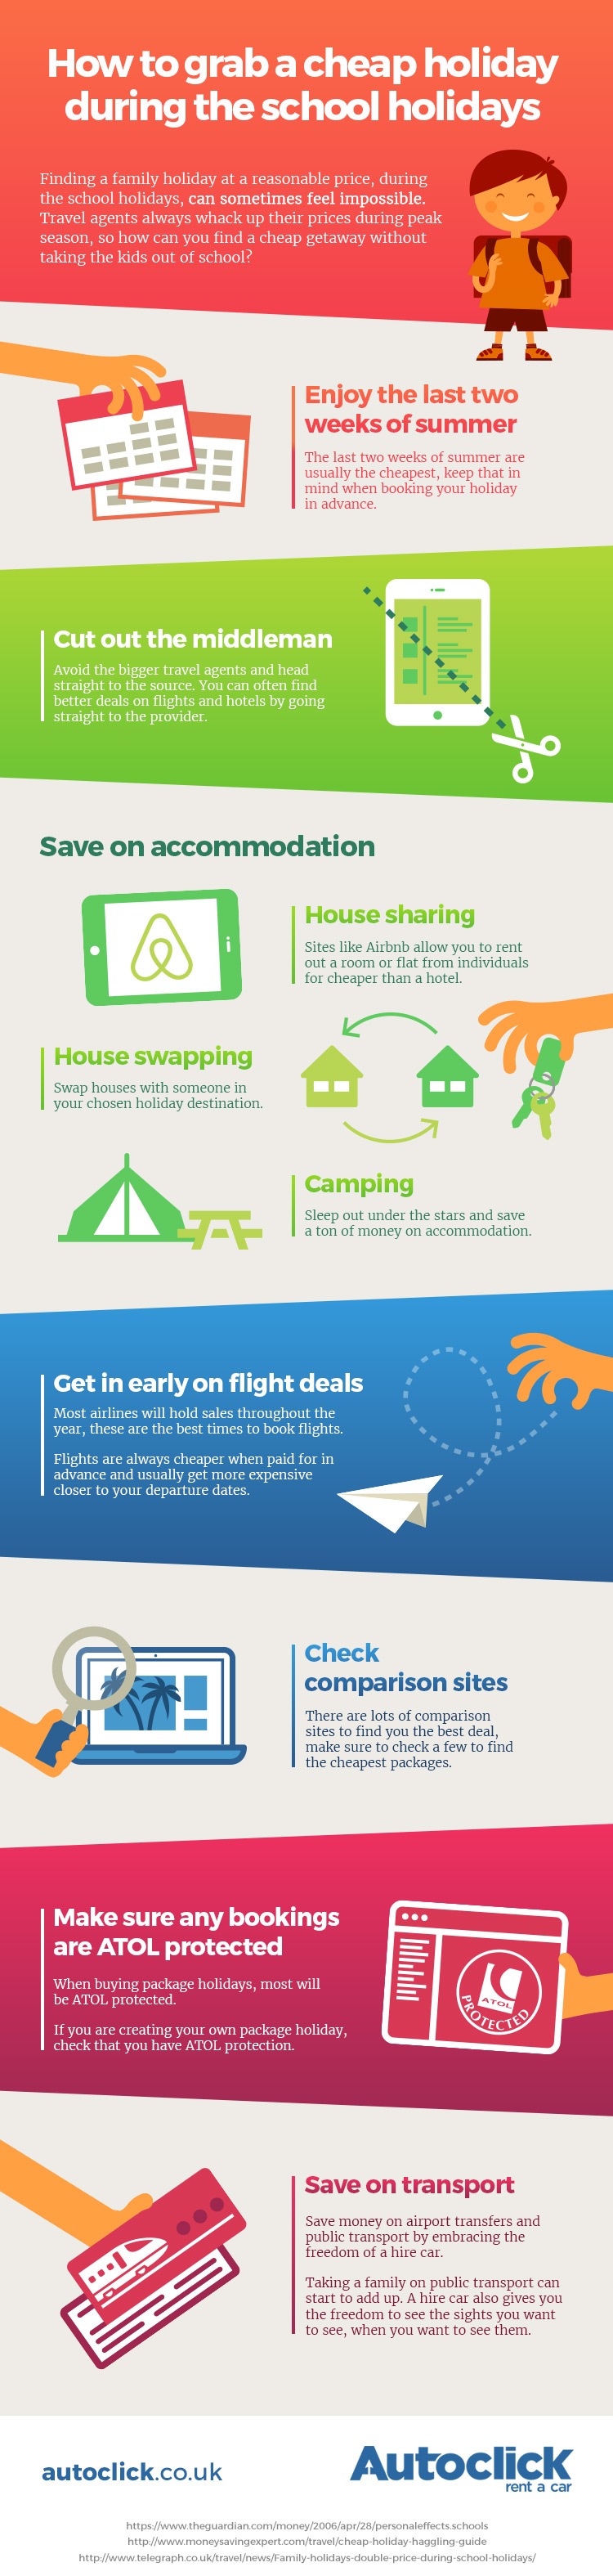 How to get the best school holiday deals